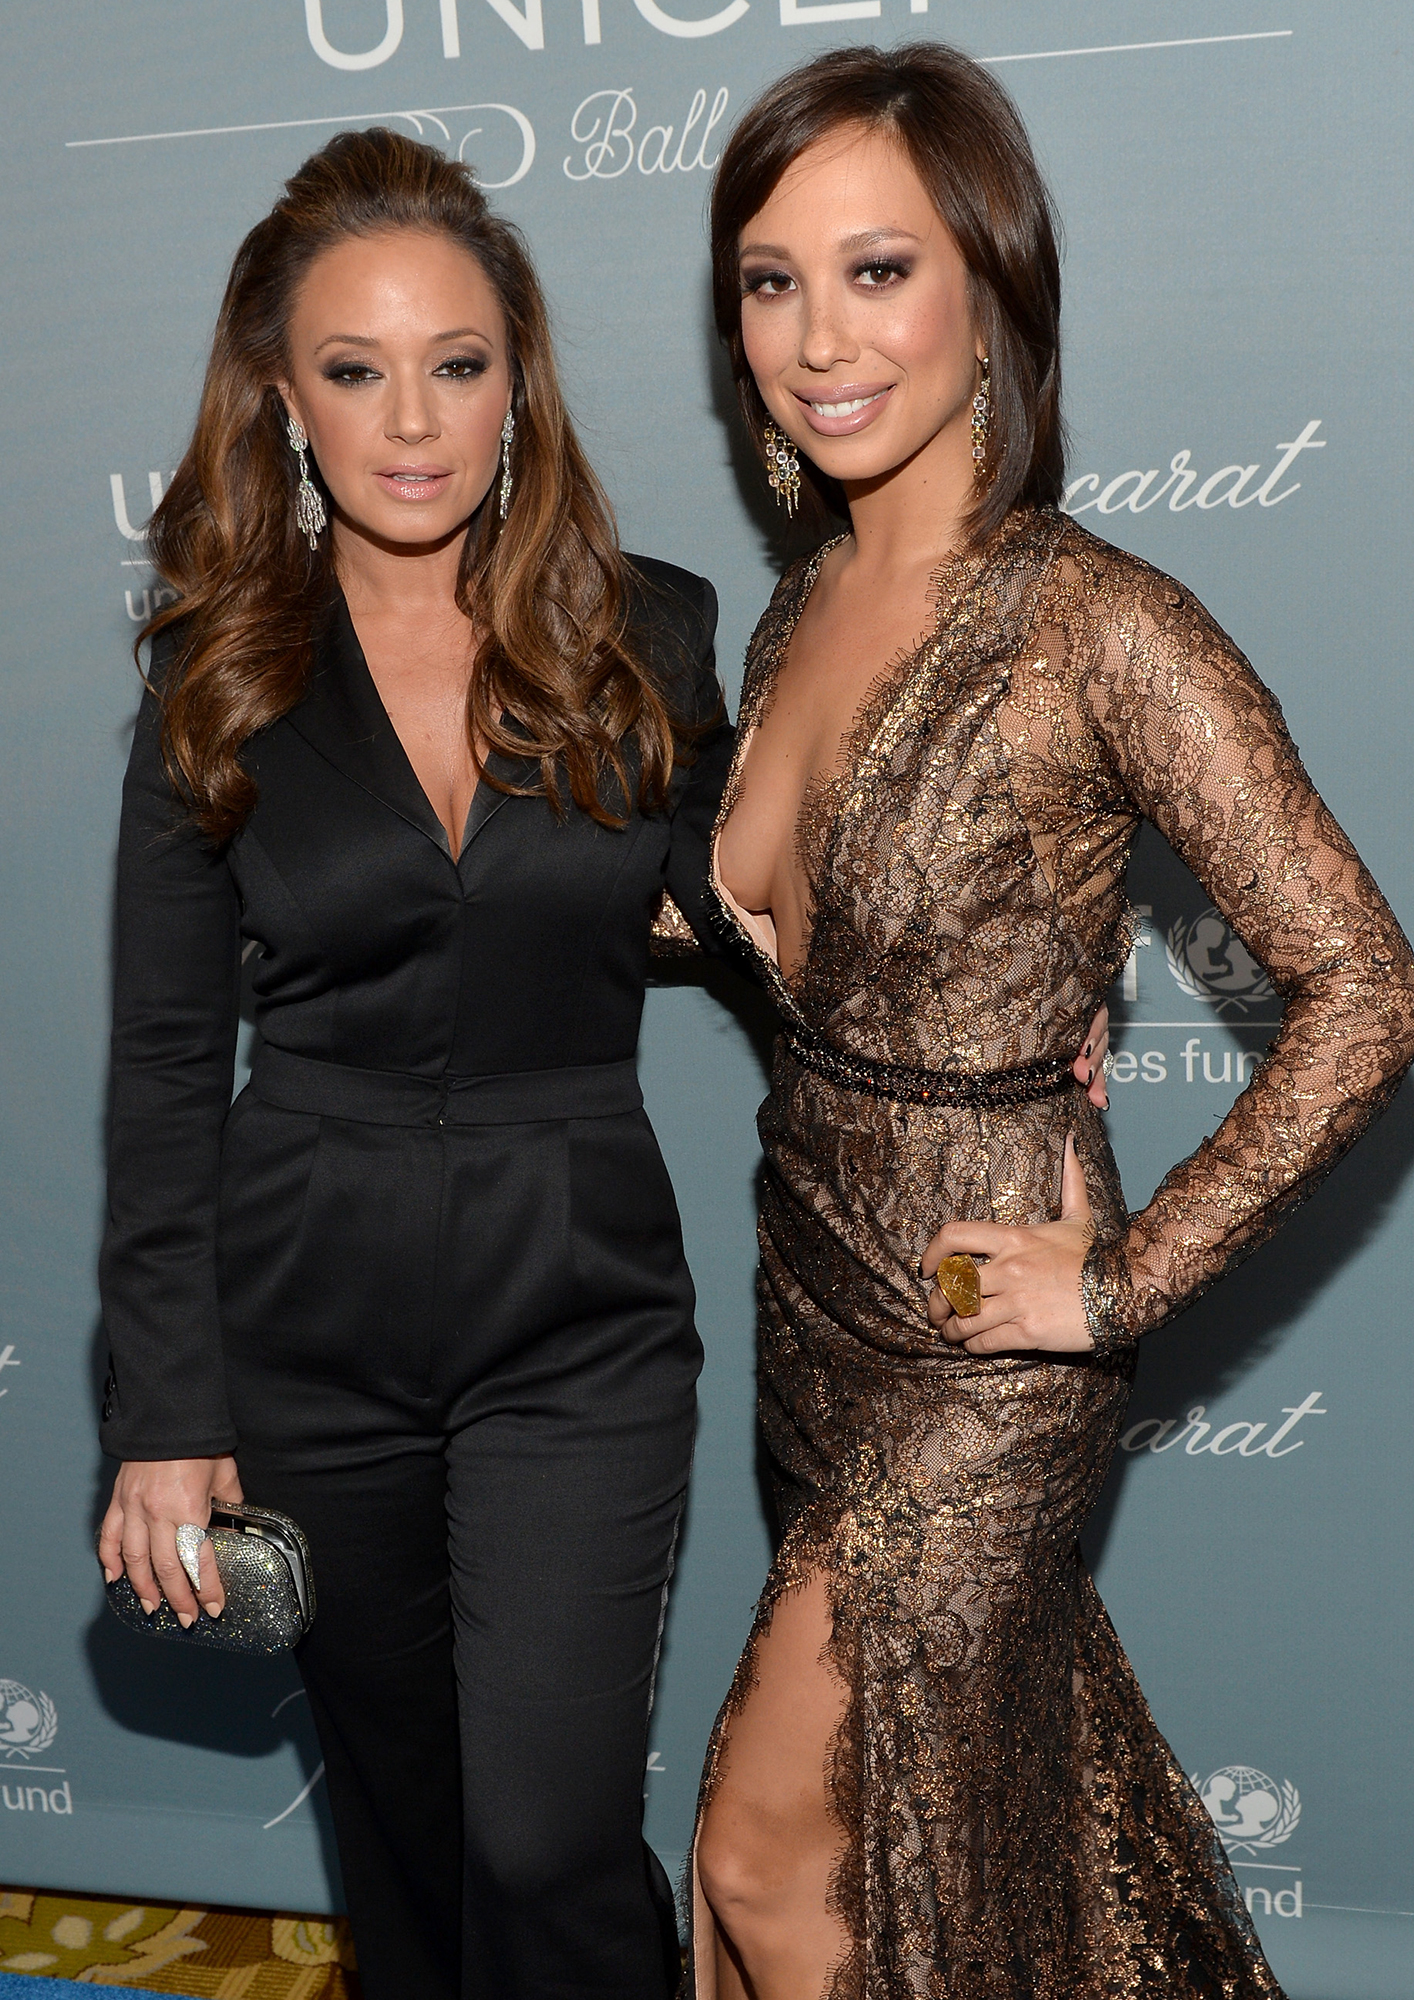 Cheryl Burke Celebrates Bridal Shower at 'Matron of Honor' Leah Remini's House Ahead of Wedding to Fiance Matthew Lawrence - Cheryl Burke with Leah Remini.